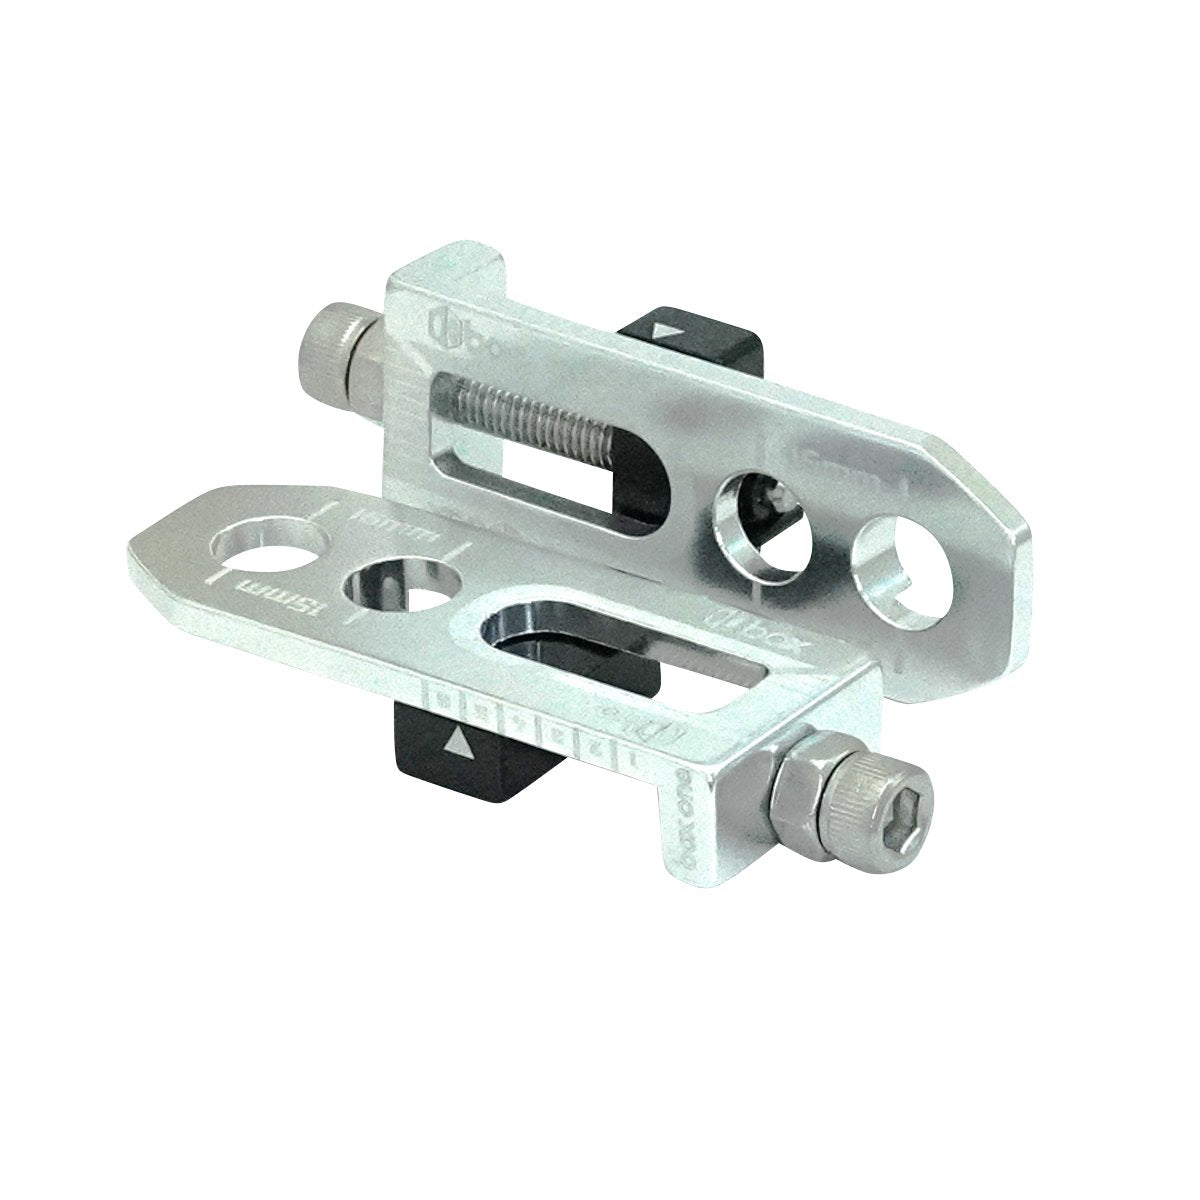 "Box One 3/8"" BMX Chain Tensioners - Pair - Silver"